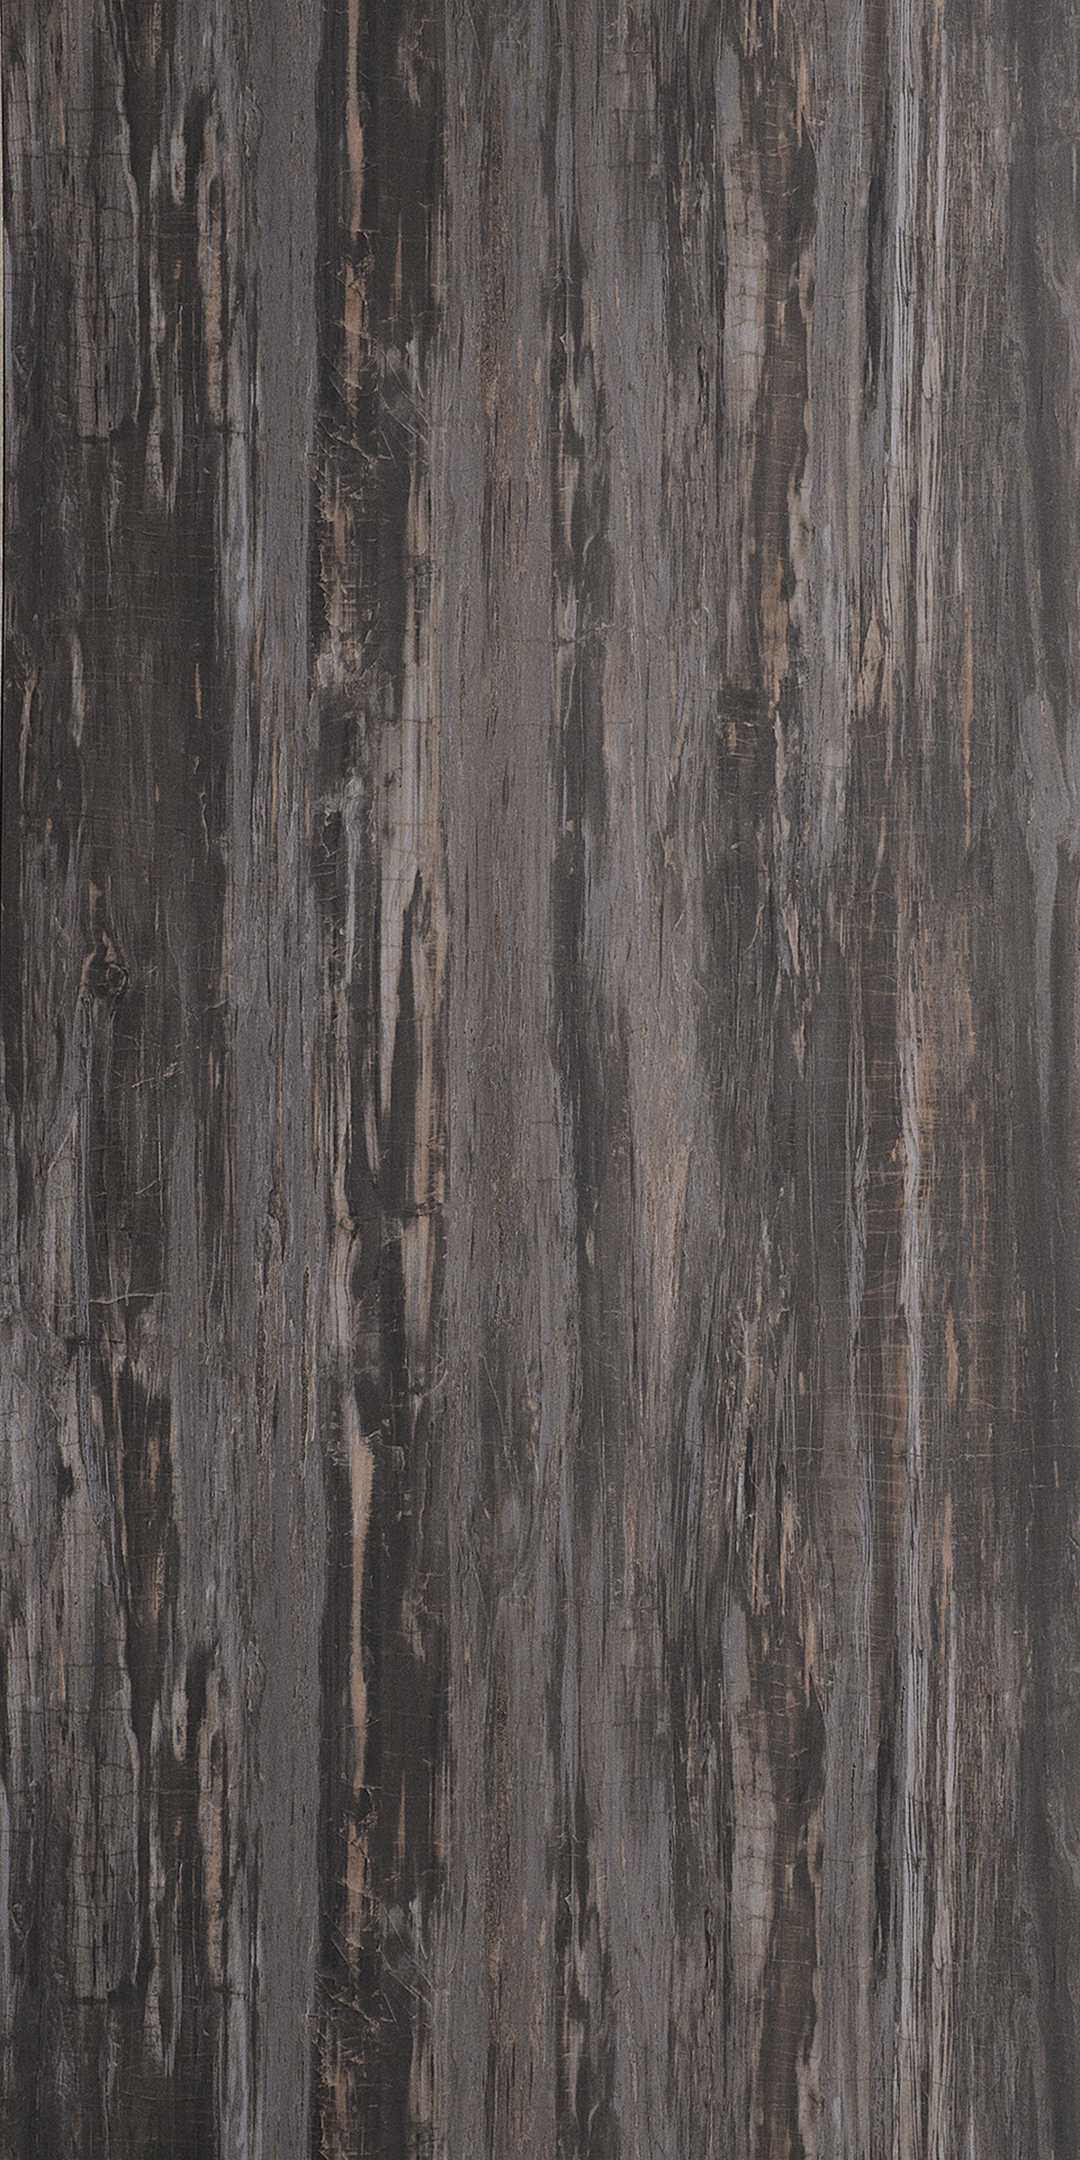 Cs8402 Distressed Plank Woodgrain Compact Hpl Billiona